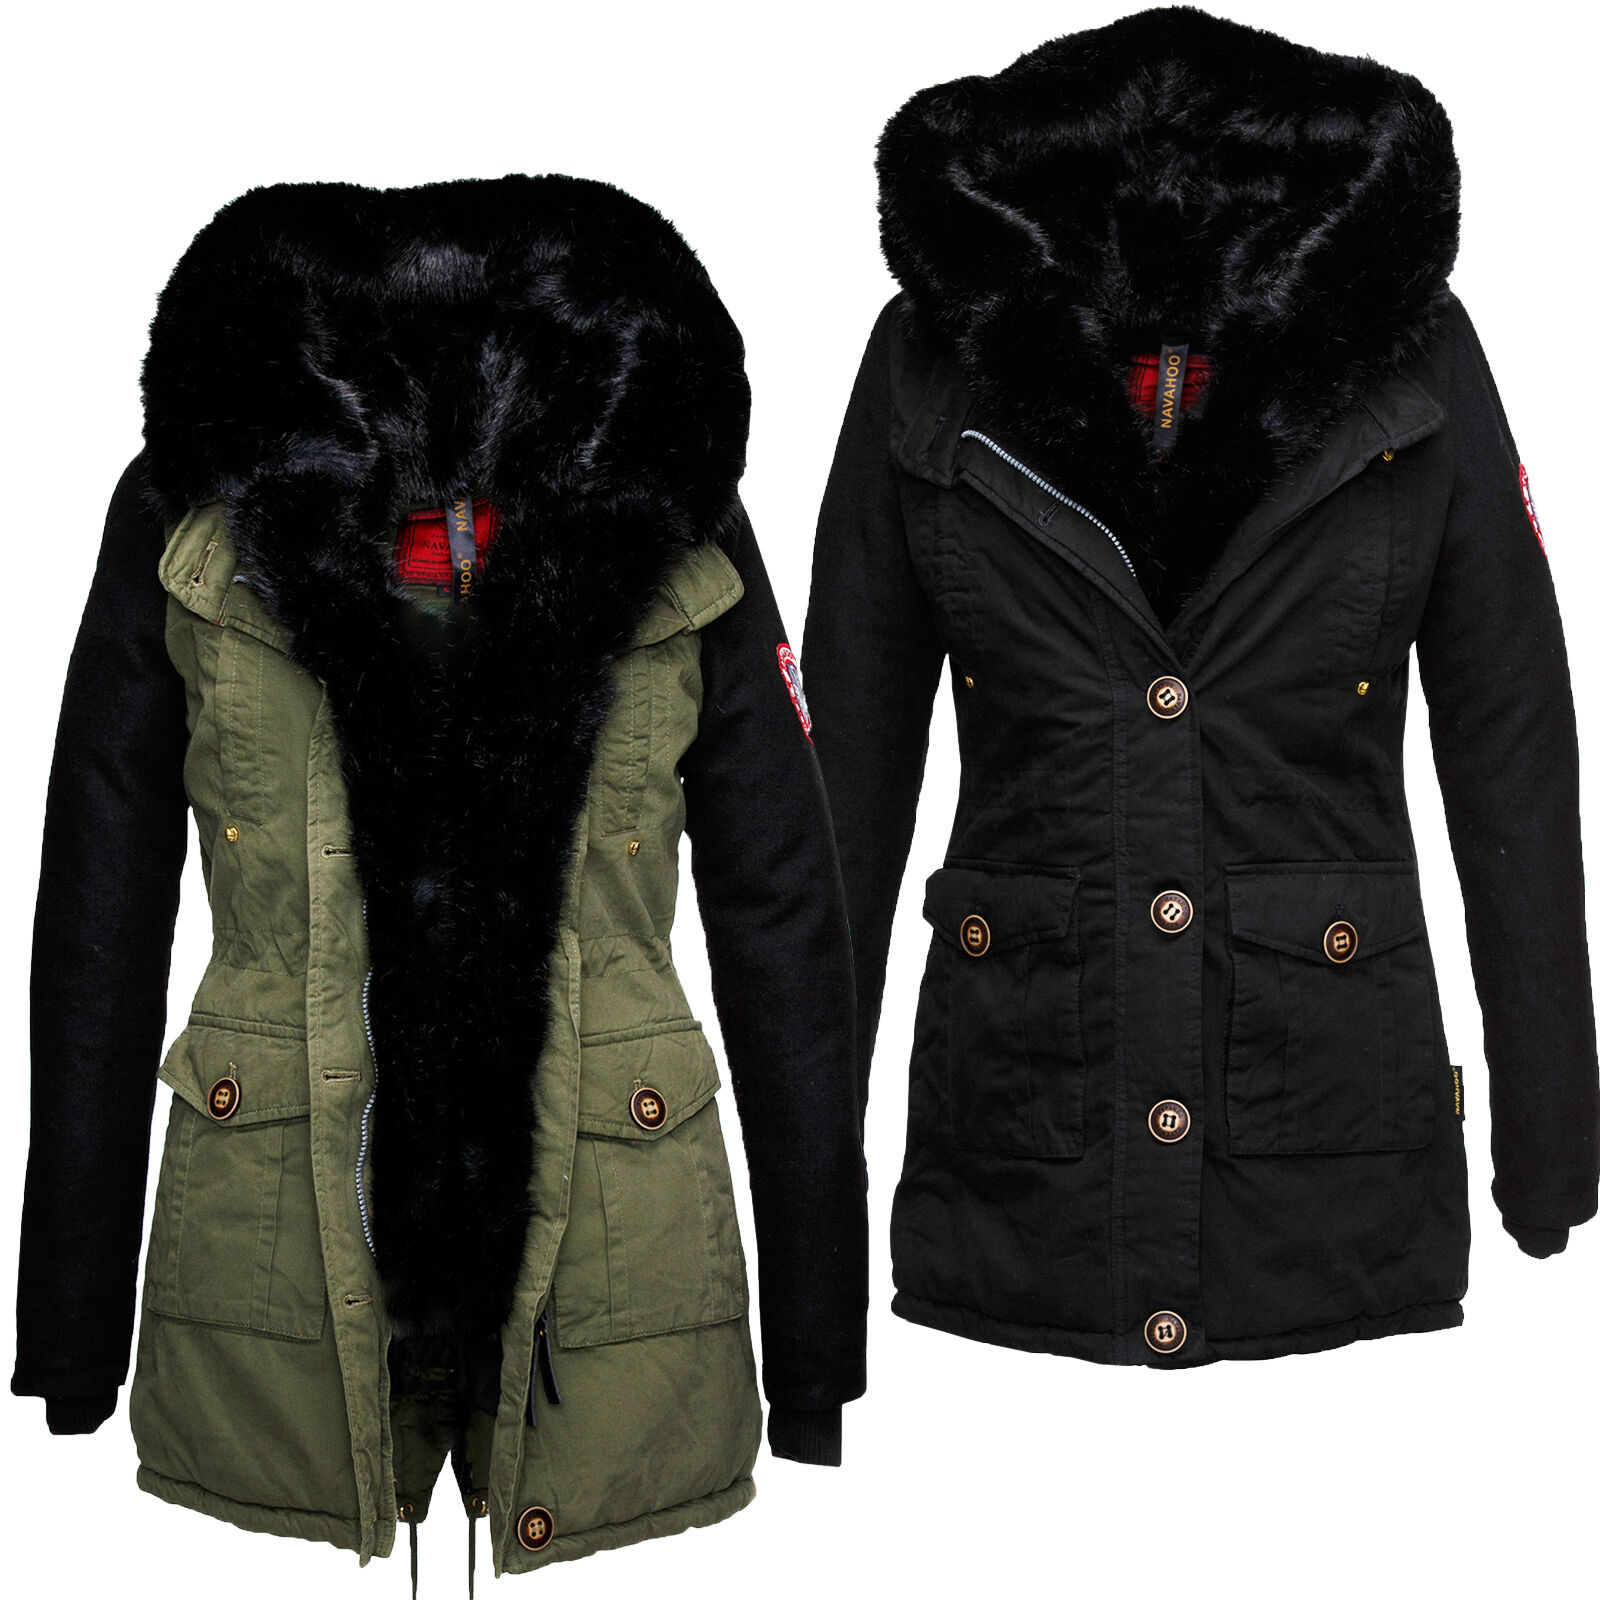 navahoo nirvana damen jacke parka trend winter jacke xxl. Black Bedroom Furniture Sets. Home Design Ideas